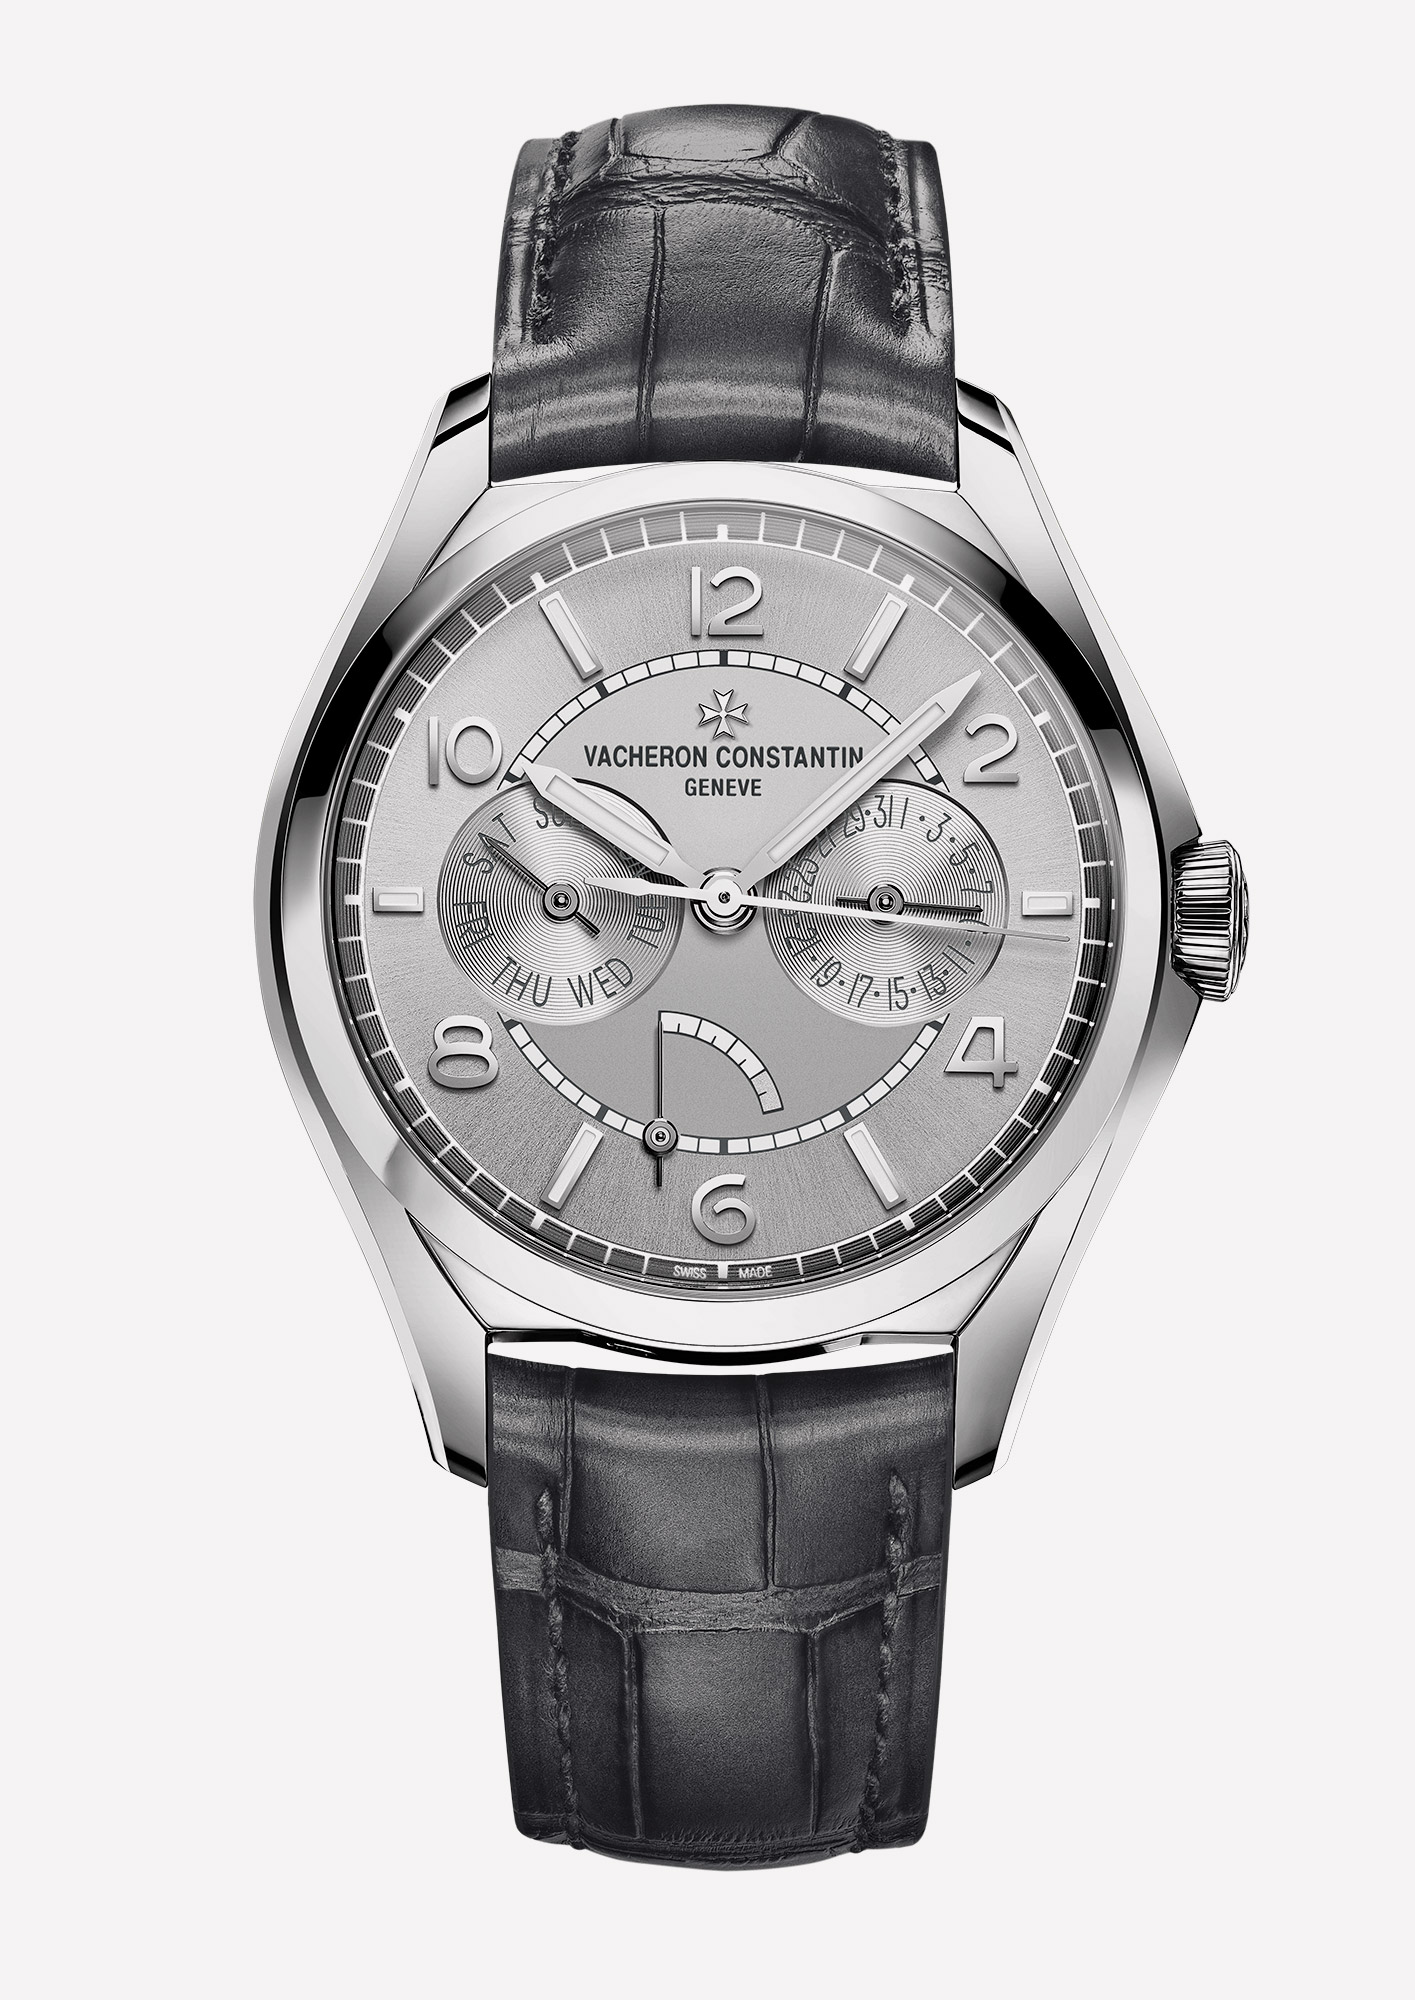 Vacheron Constantin Fiftysix day-date with power reserve indicator